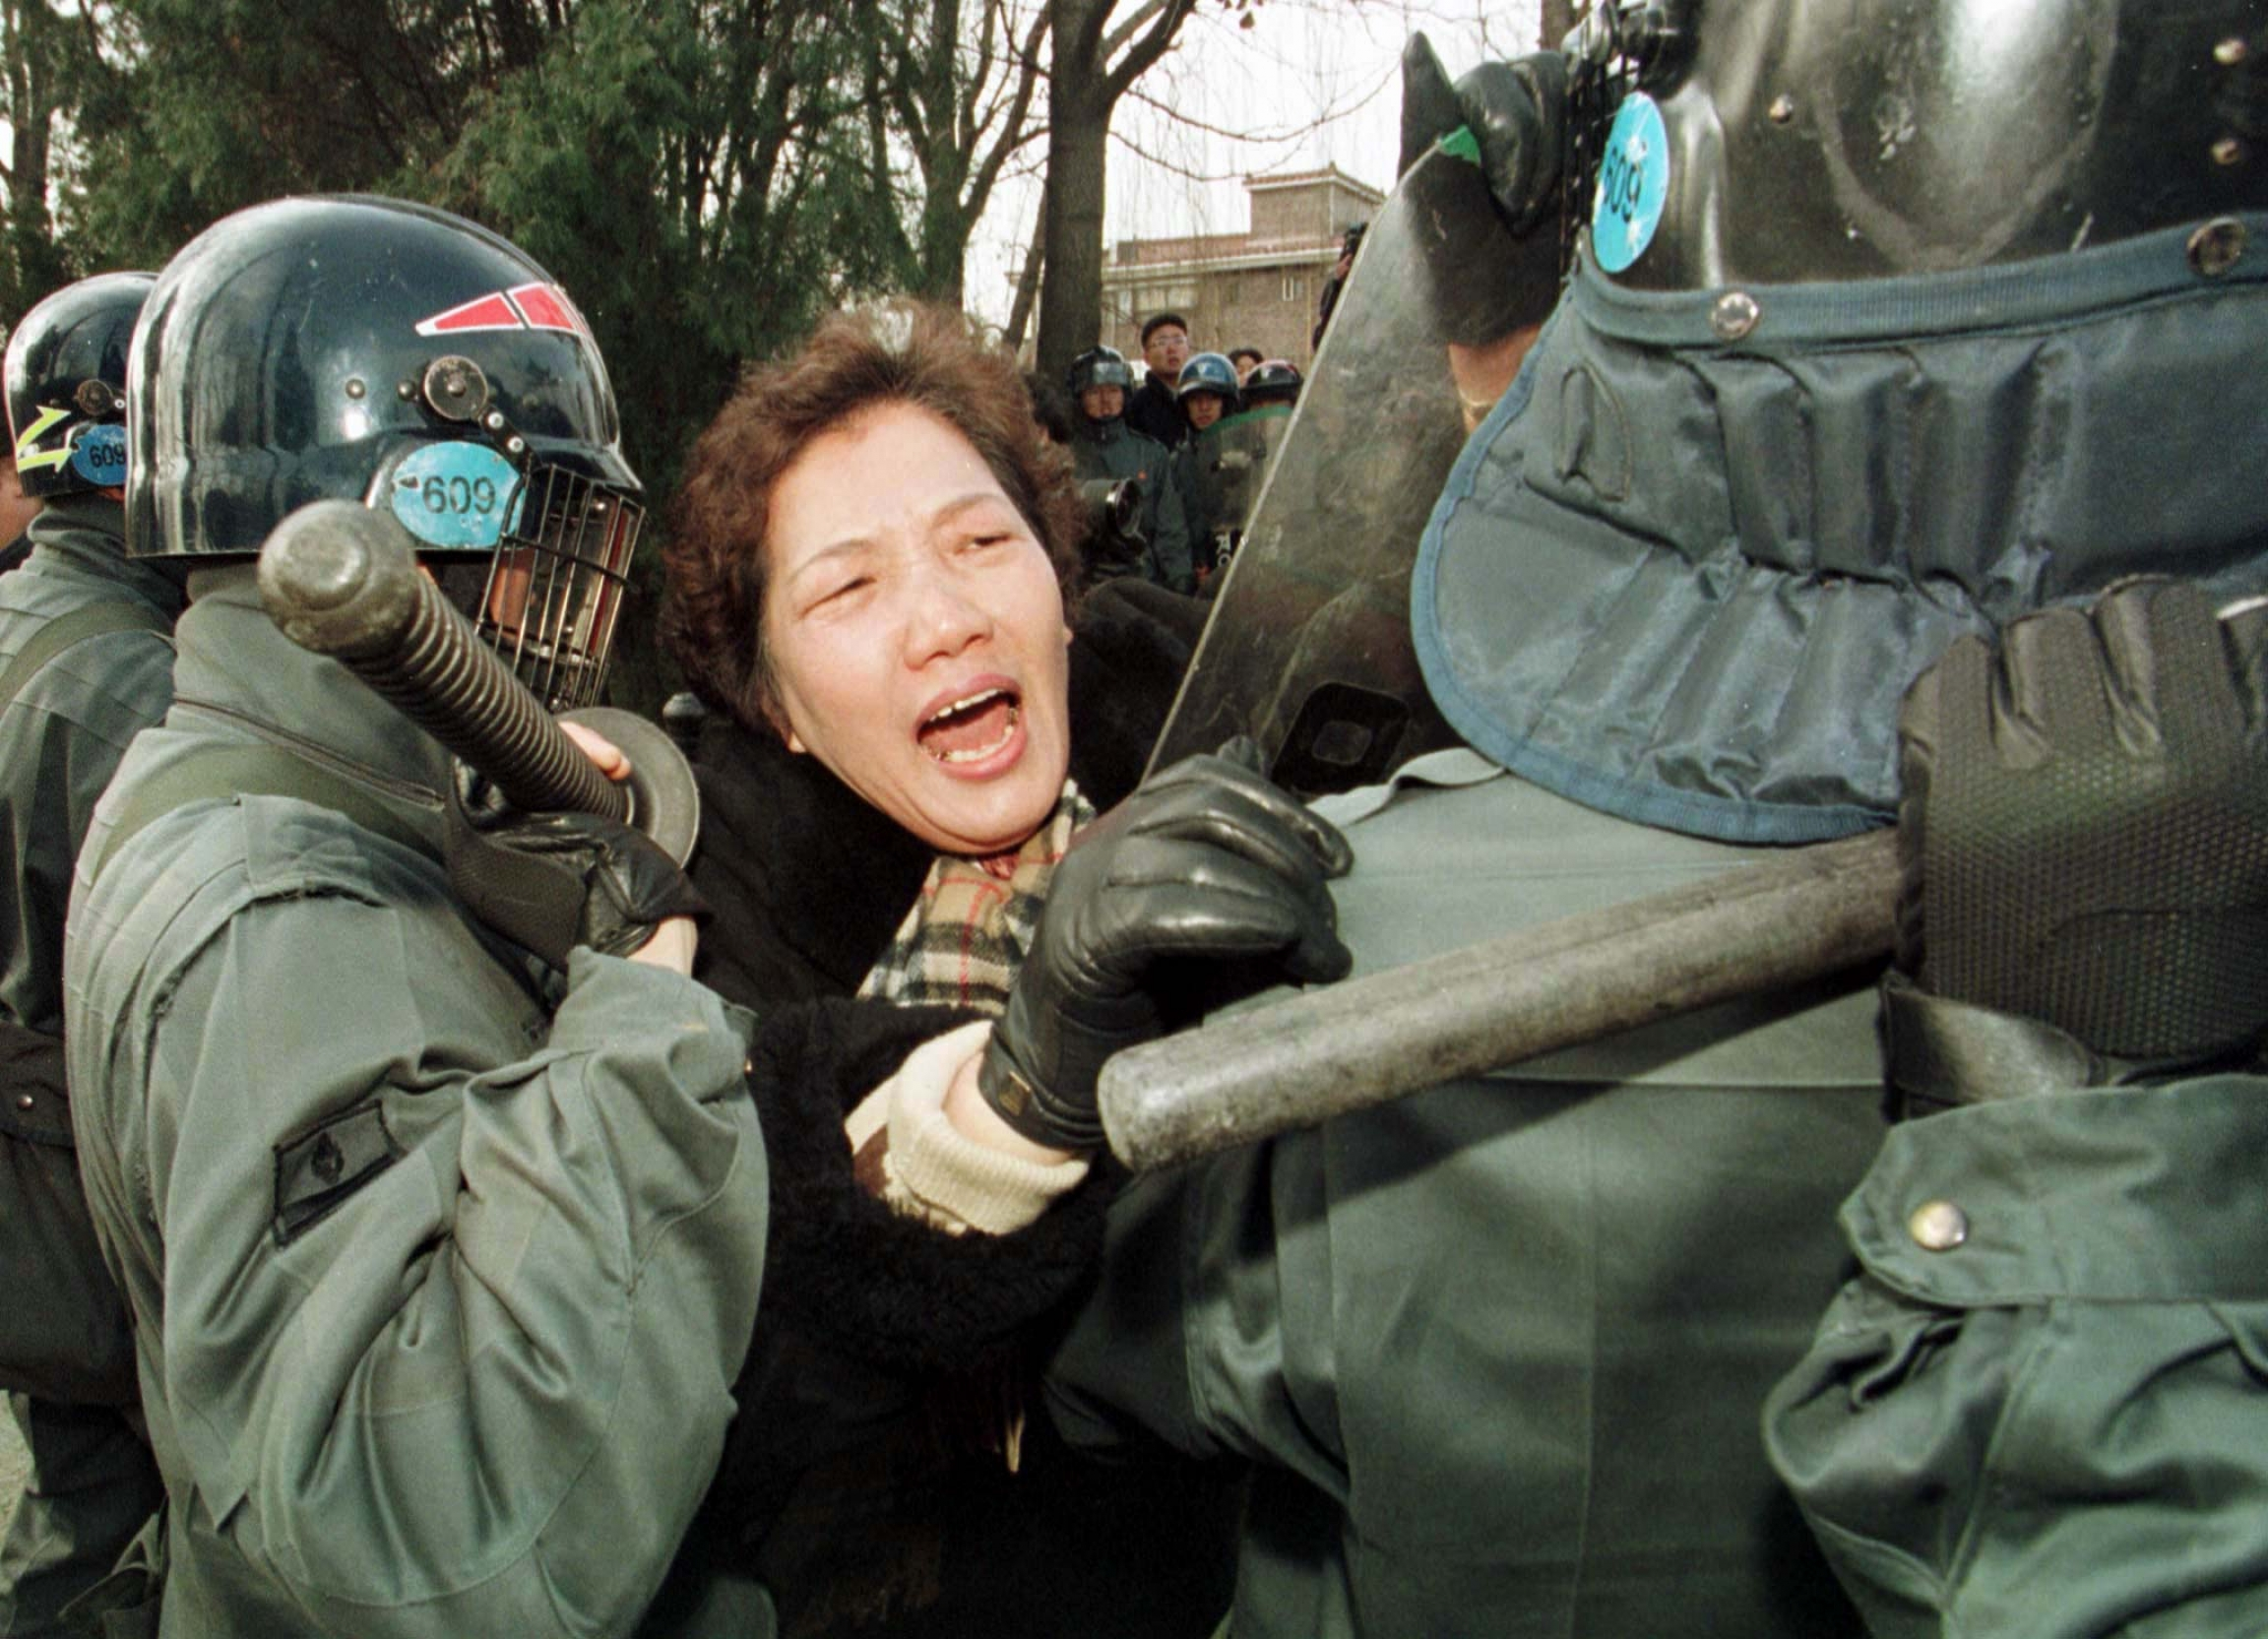 A woman protester cries out amid riot police in green uniforms.